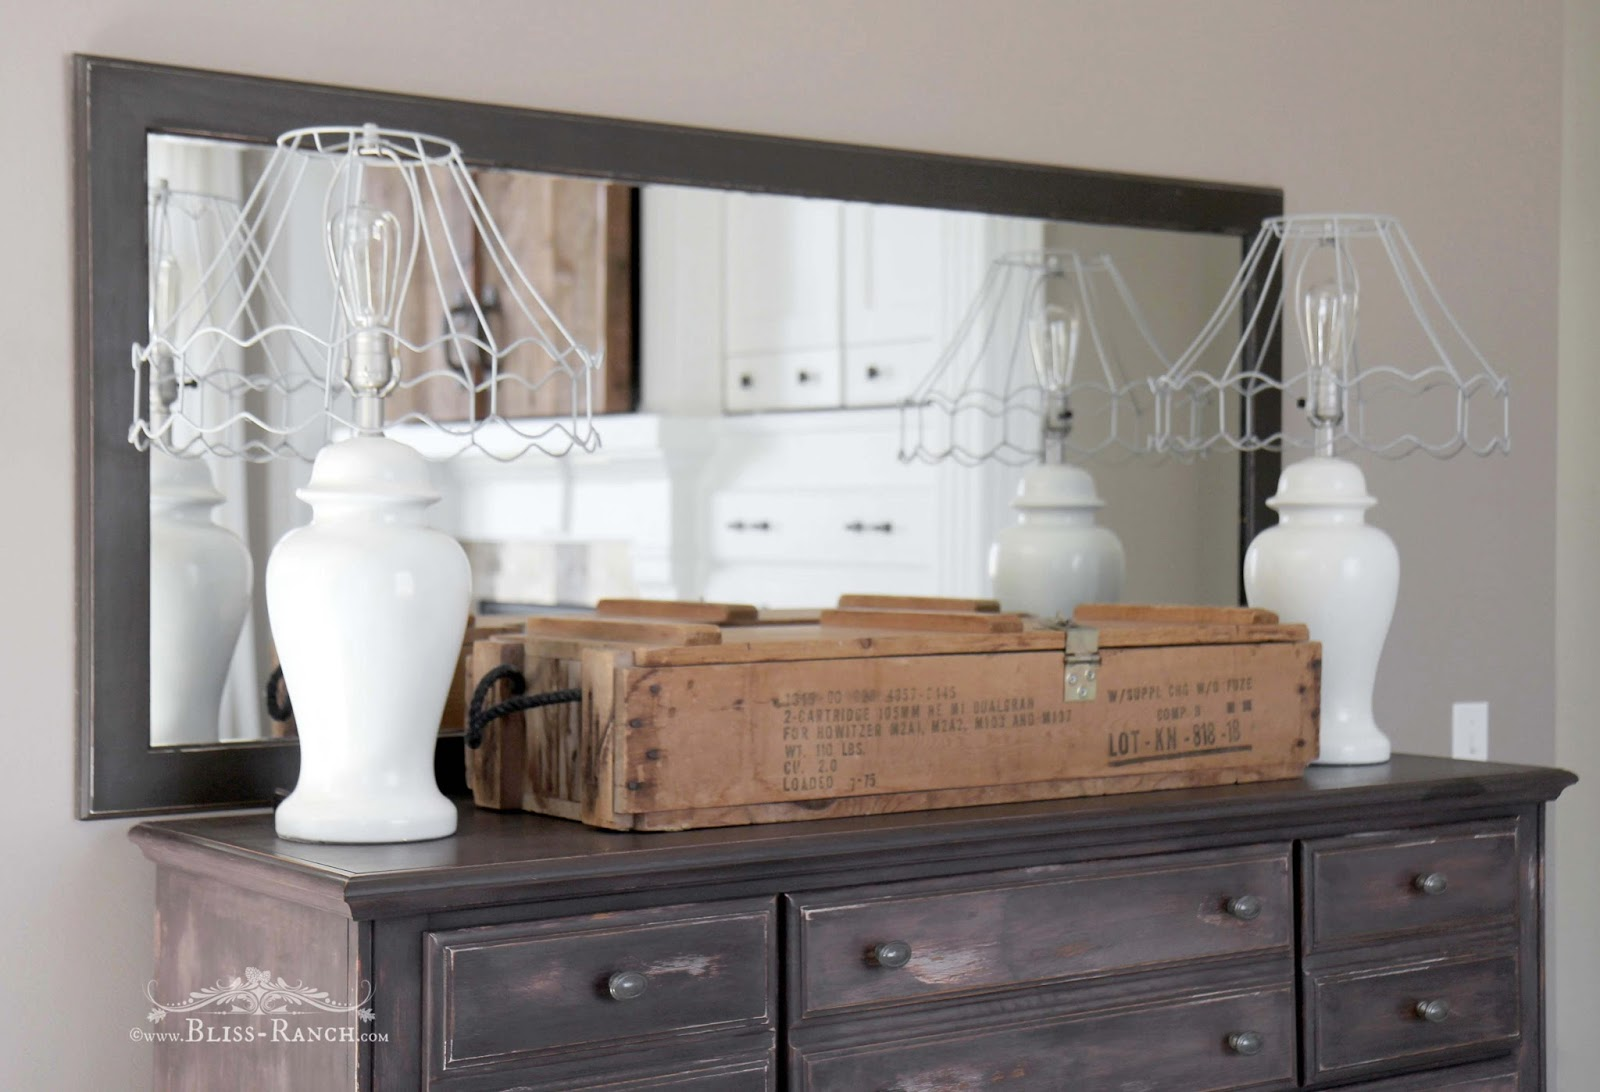 Bliss Ranch: Updated Lamps April Thrifty Style Team